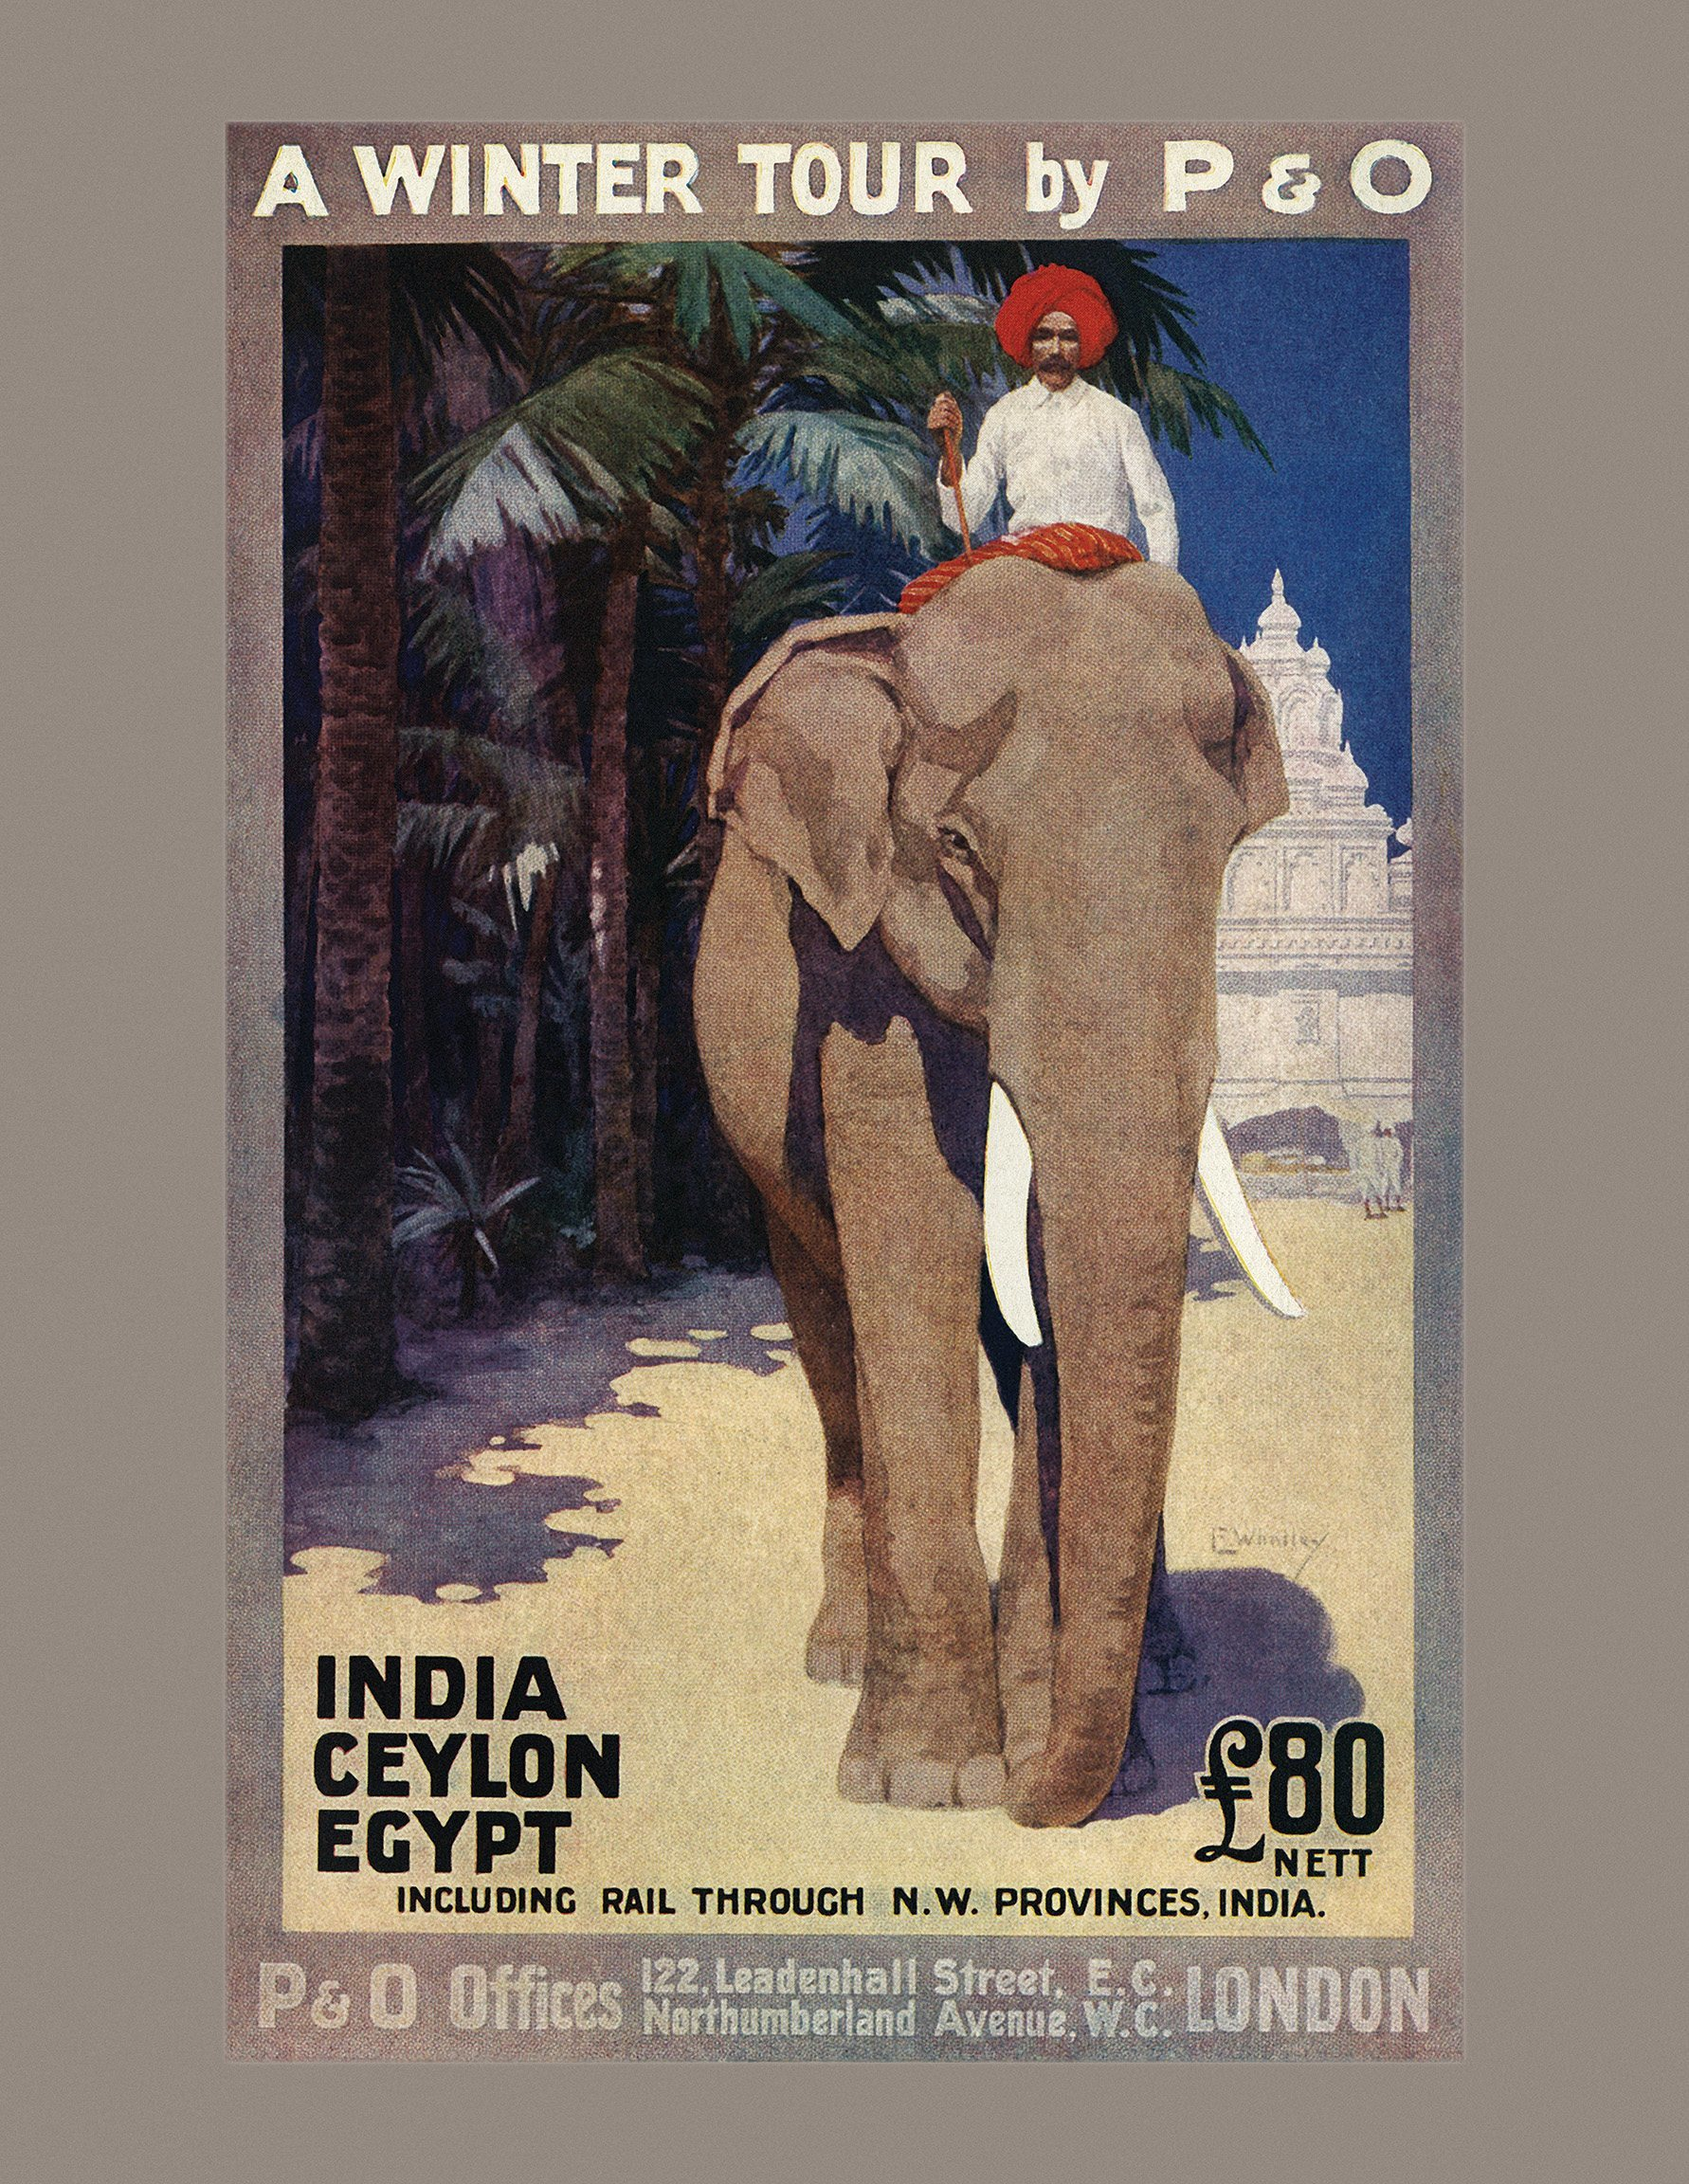 brochure for P&O services to India, Ceylon and Egypt, published in 1913. jpg